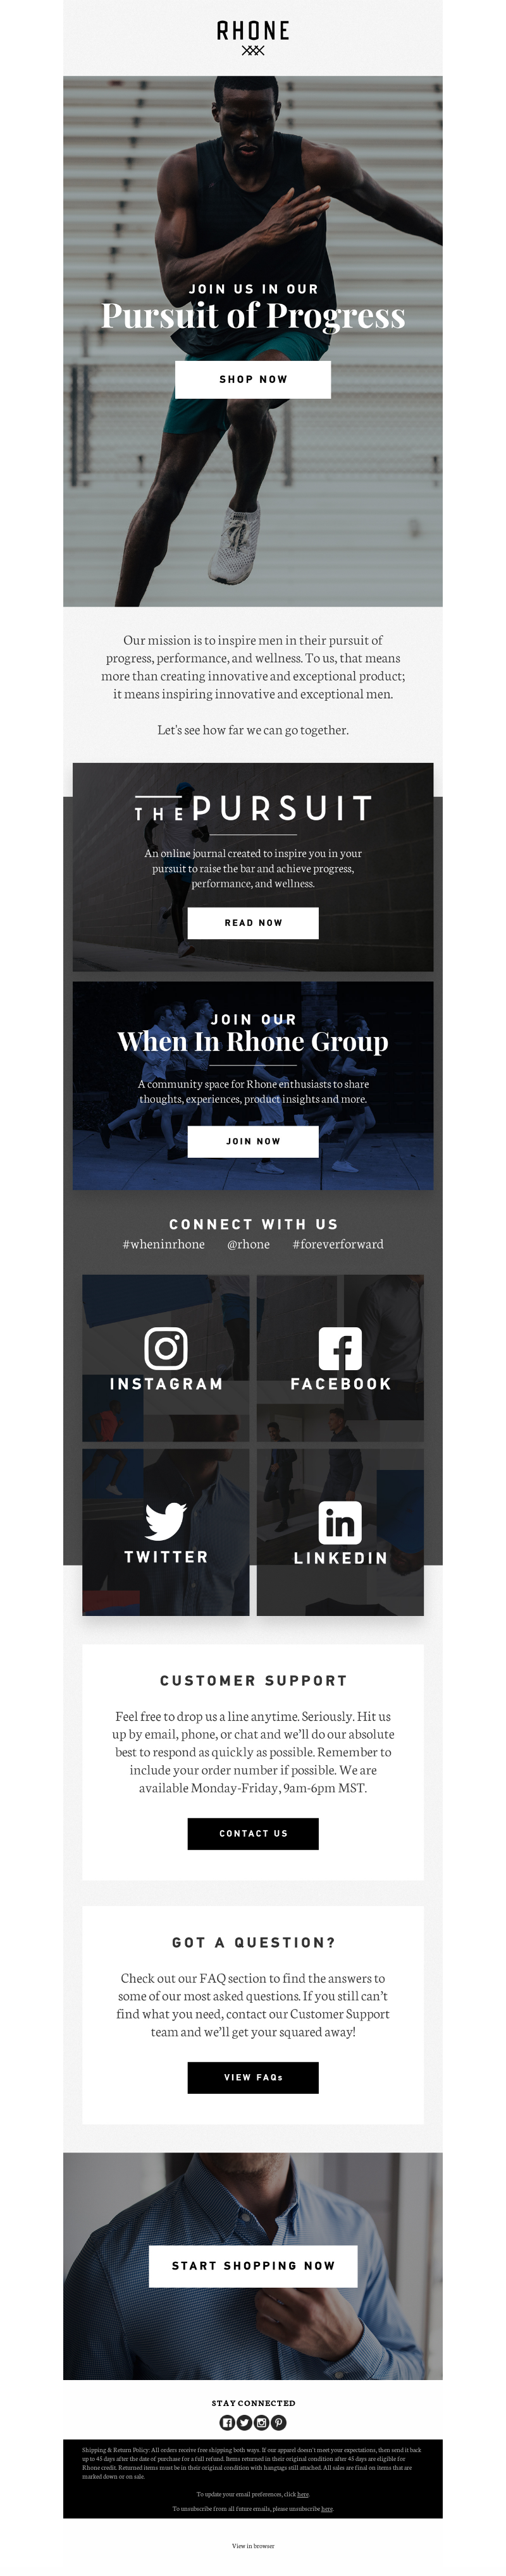 Email example from activewear brand Rhone